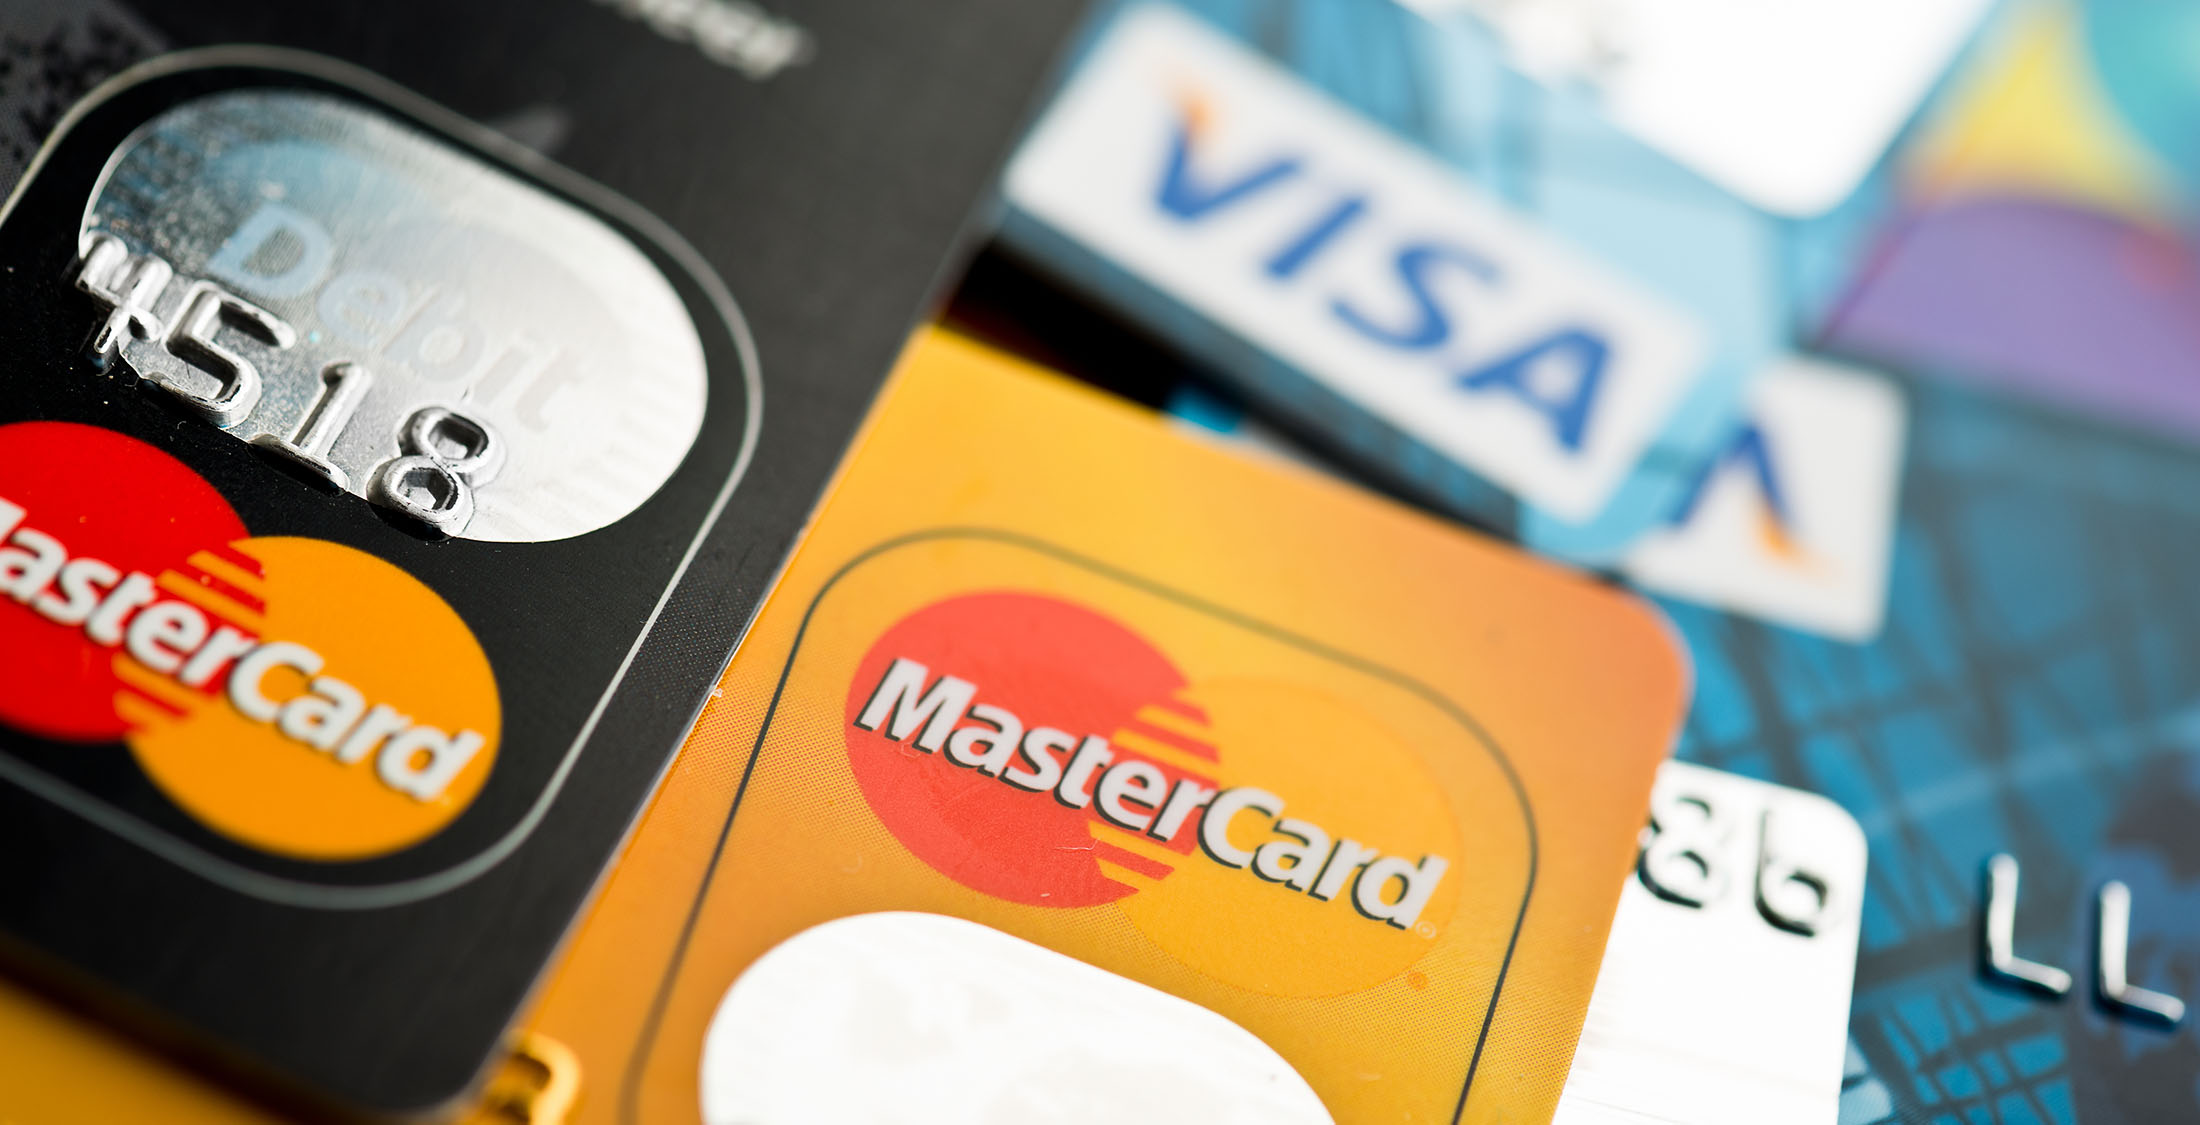 What companies offer online credit card payment?